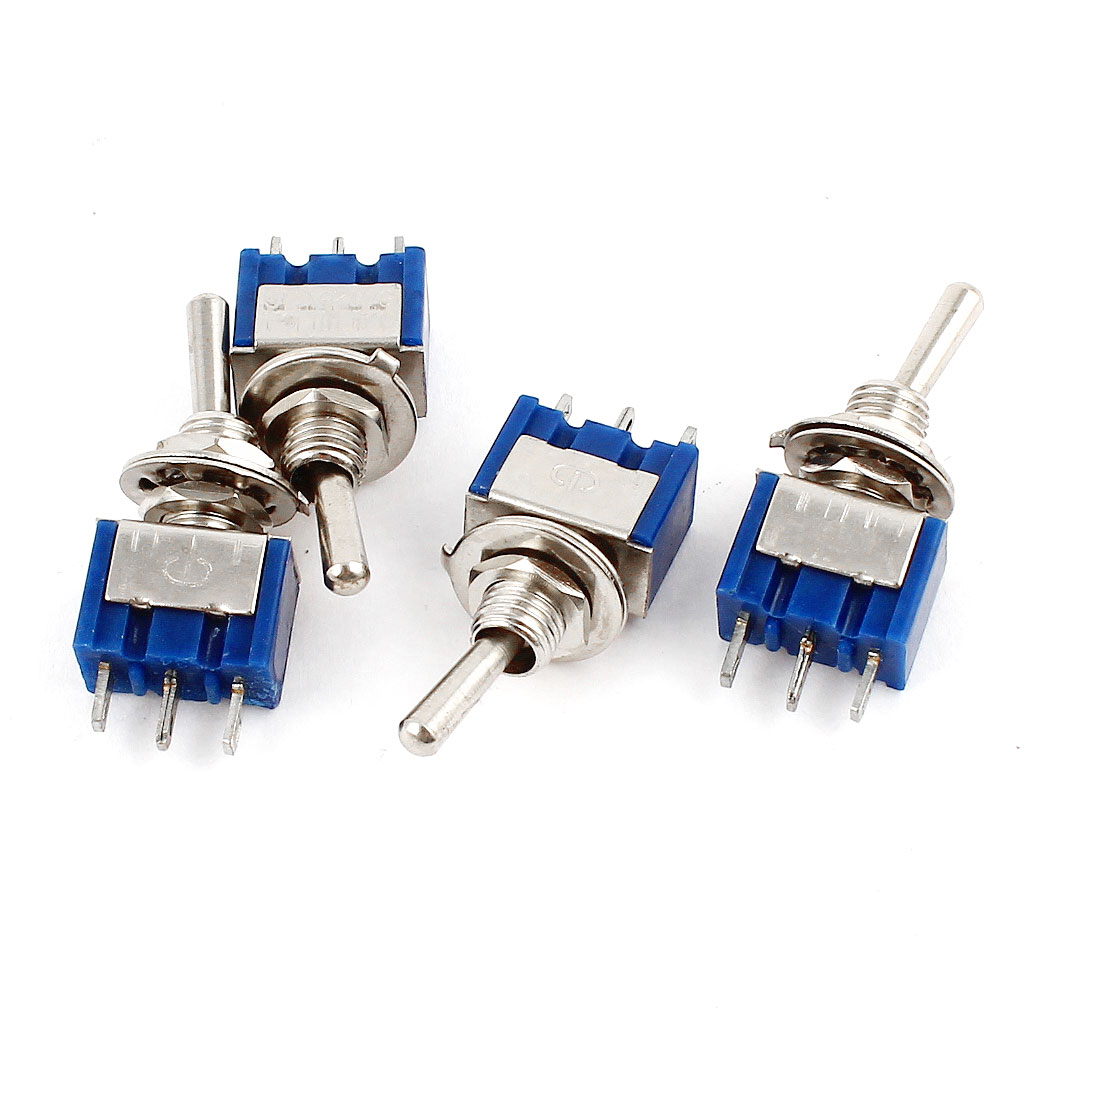 4PCS AC125V 6A Panel Mount SPDT On/Off/On Blue Toggle Switches